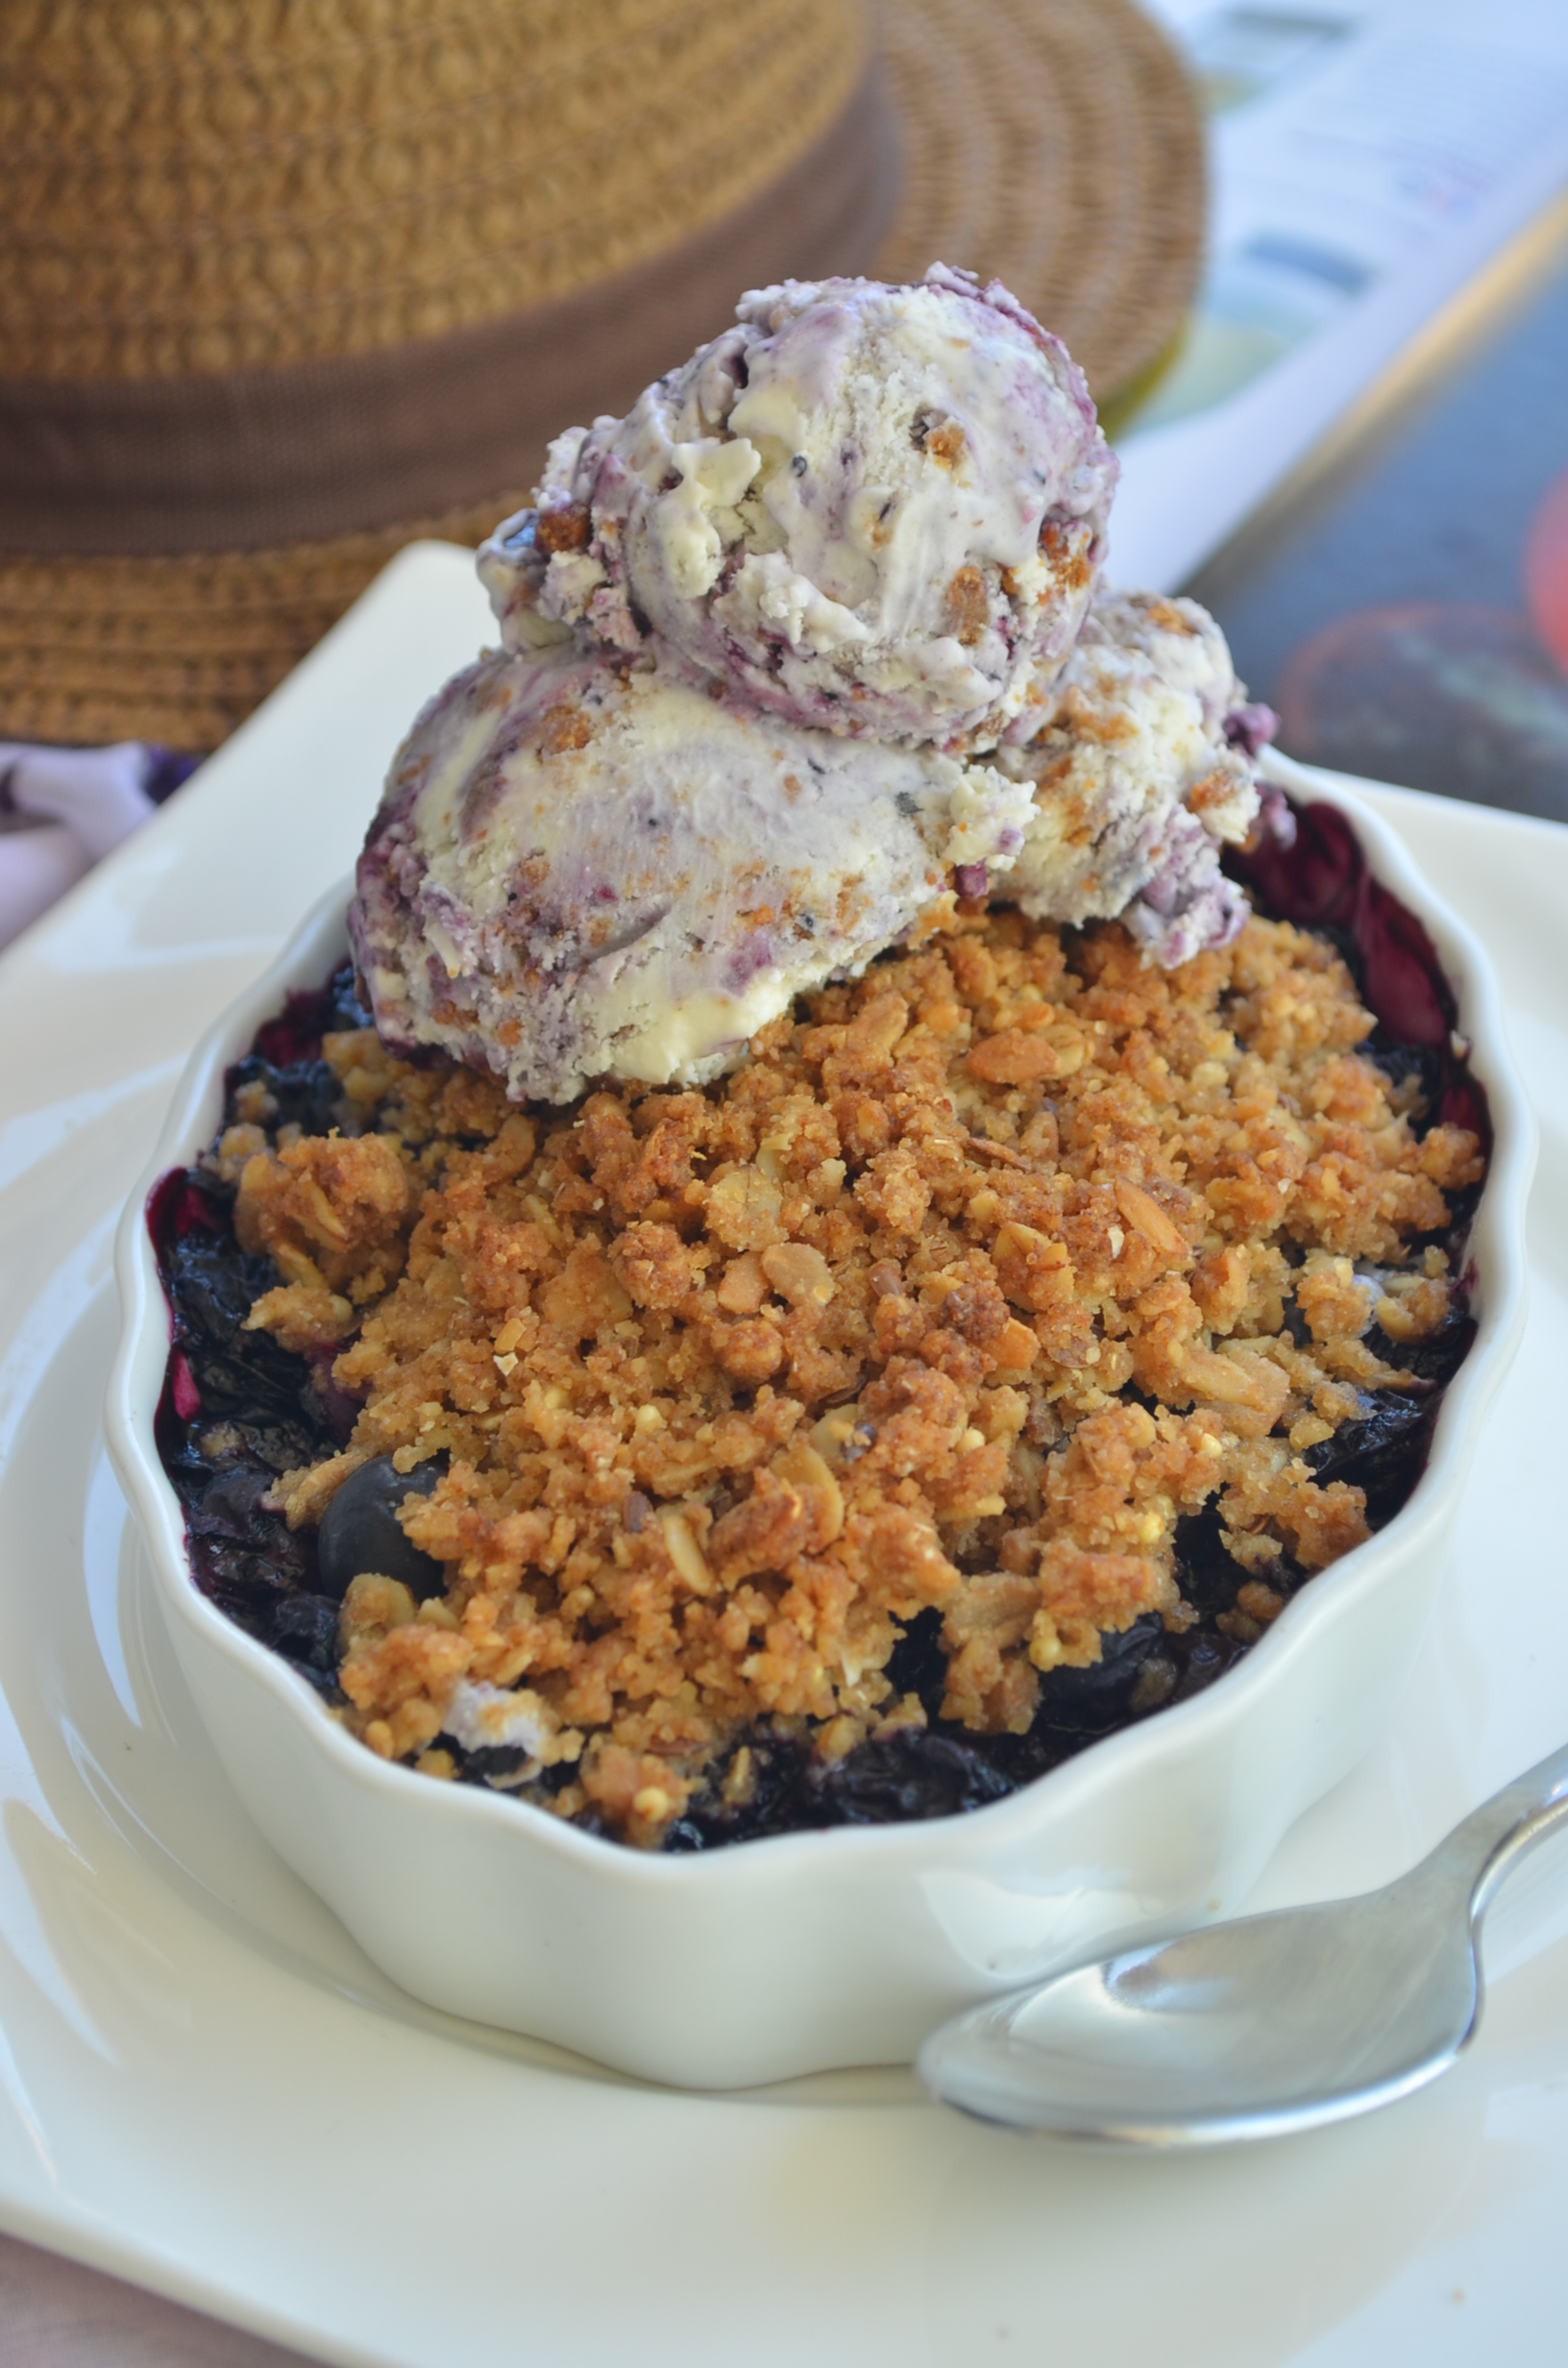 Blueberry Crumble For Two